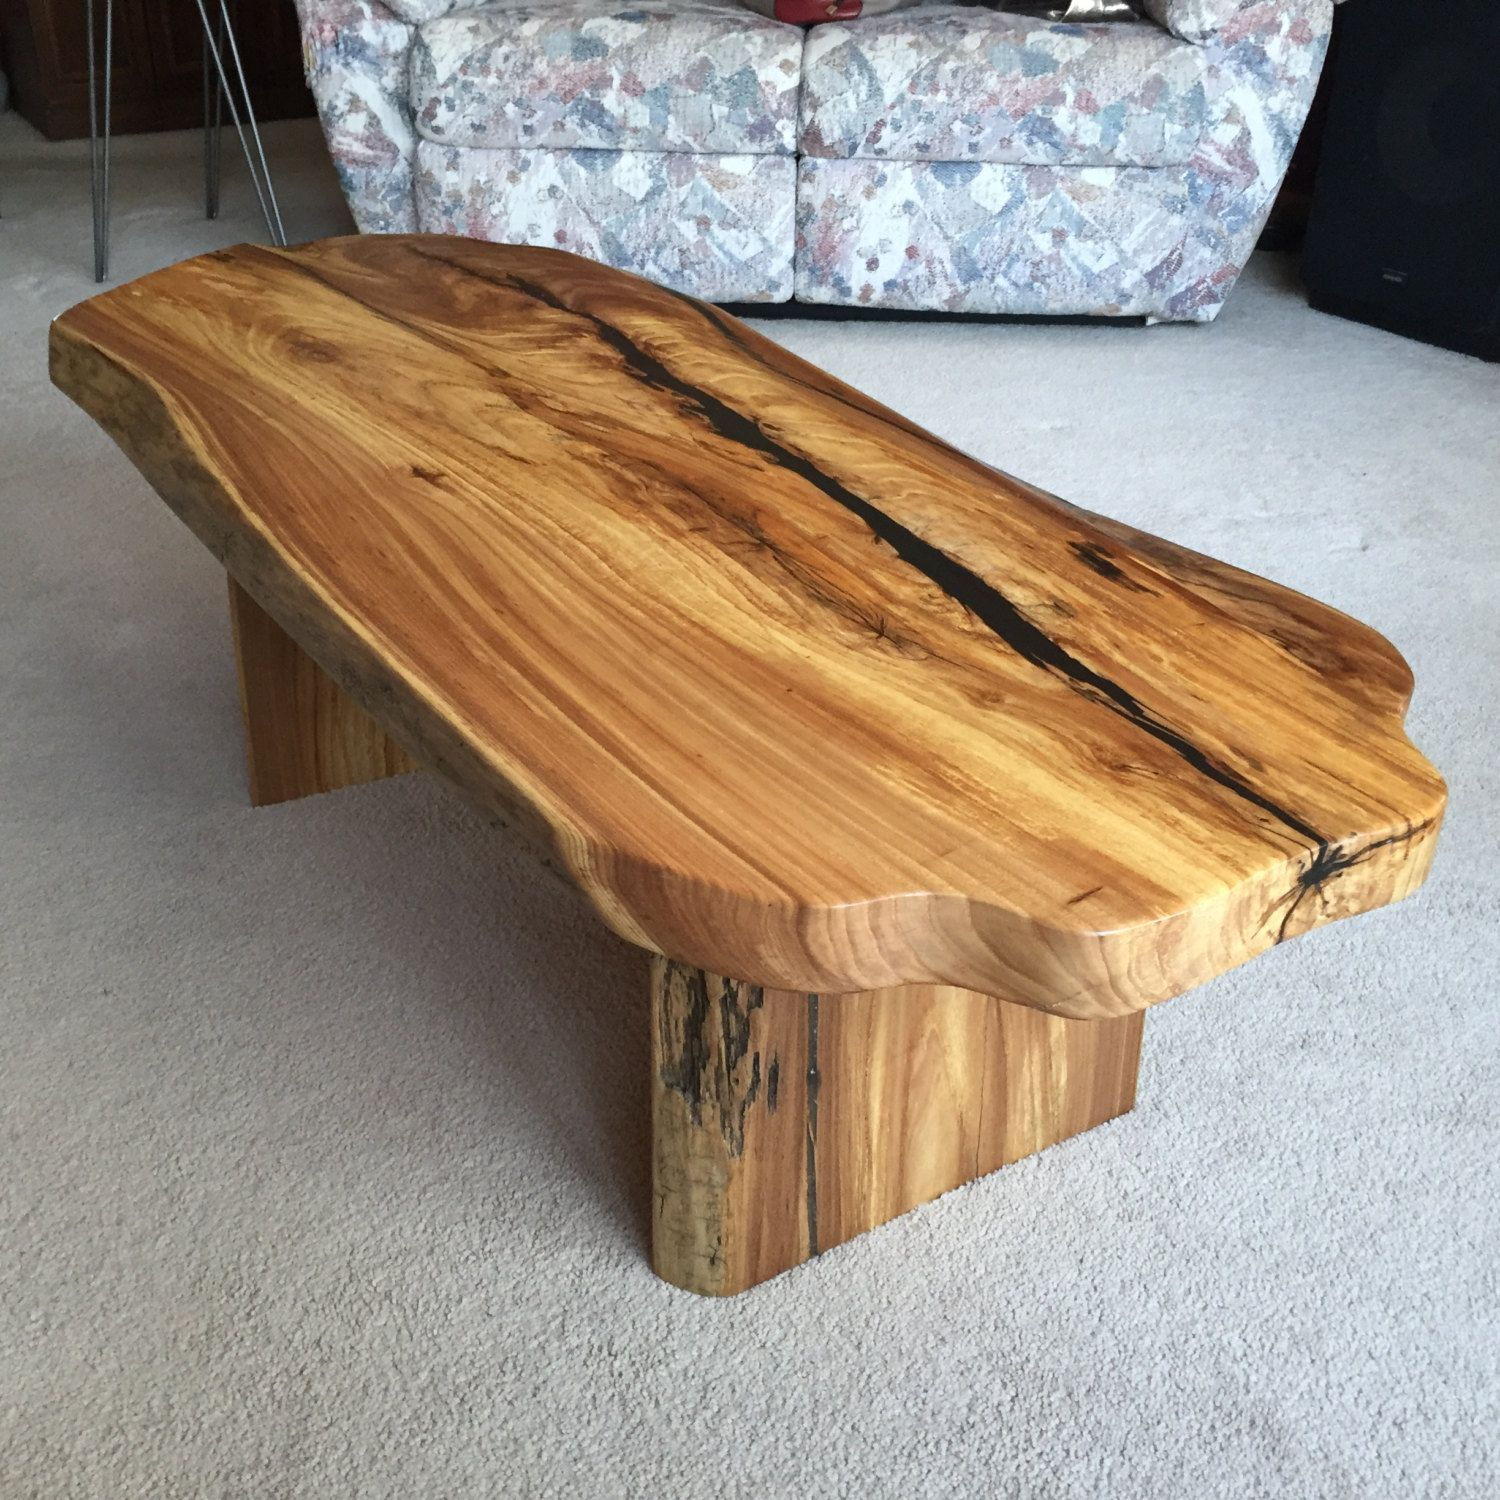 Unique live edge coffee table with live edge wood slab for Wood slab coffee table